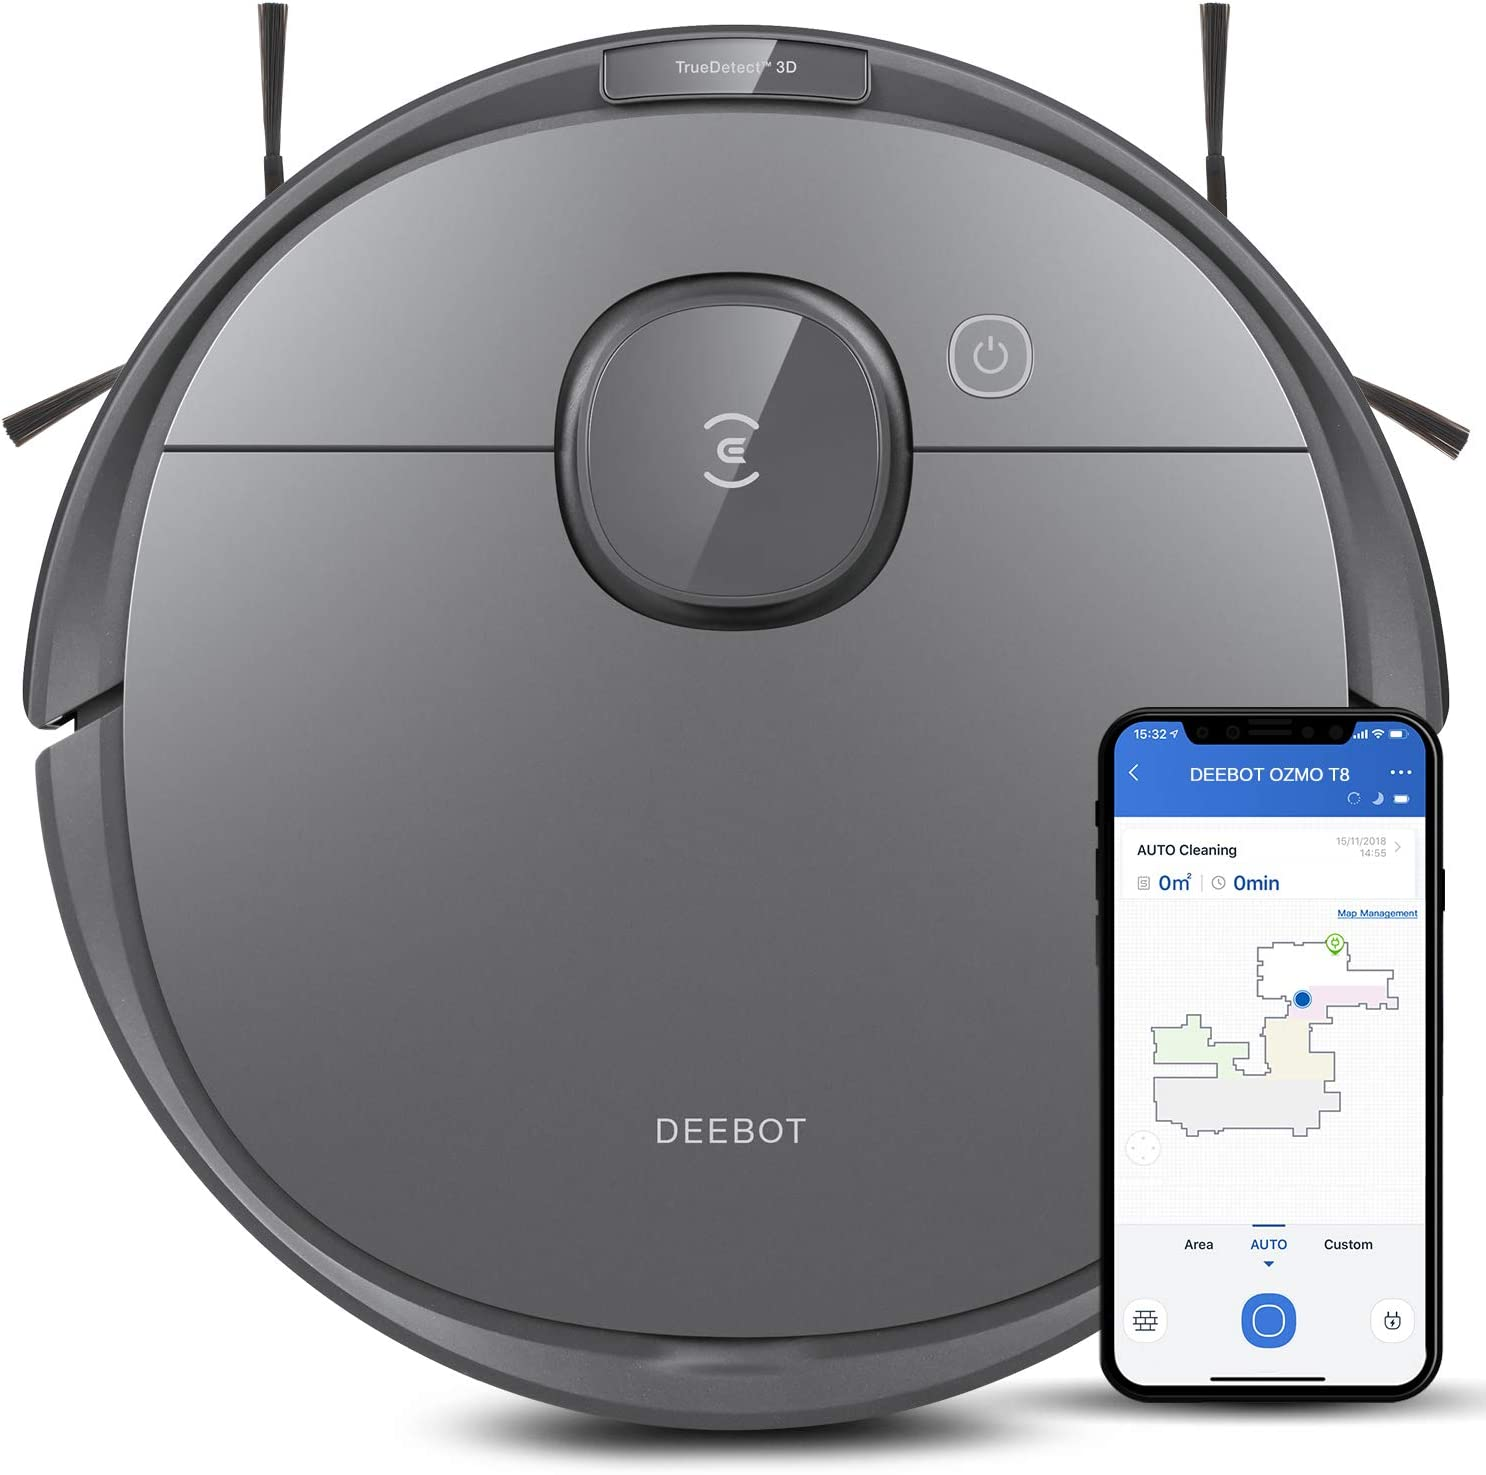 Ecovacs Deebot T8 Robot Vacuum and Mop Cleaner, Precise Laser Navigation, Multi-floor Mapping, Intelligent Object Avoidance, Full-customize clean, No-go and No-mop Zones, 180min Runtime Robotic Vacuum